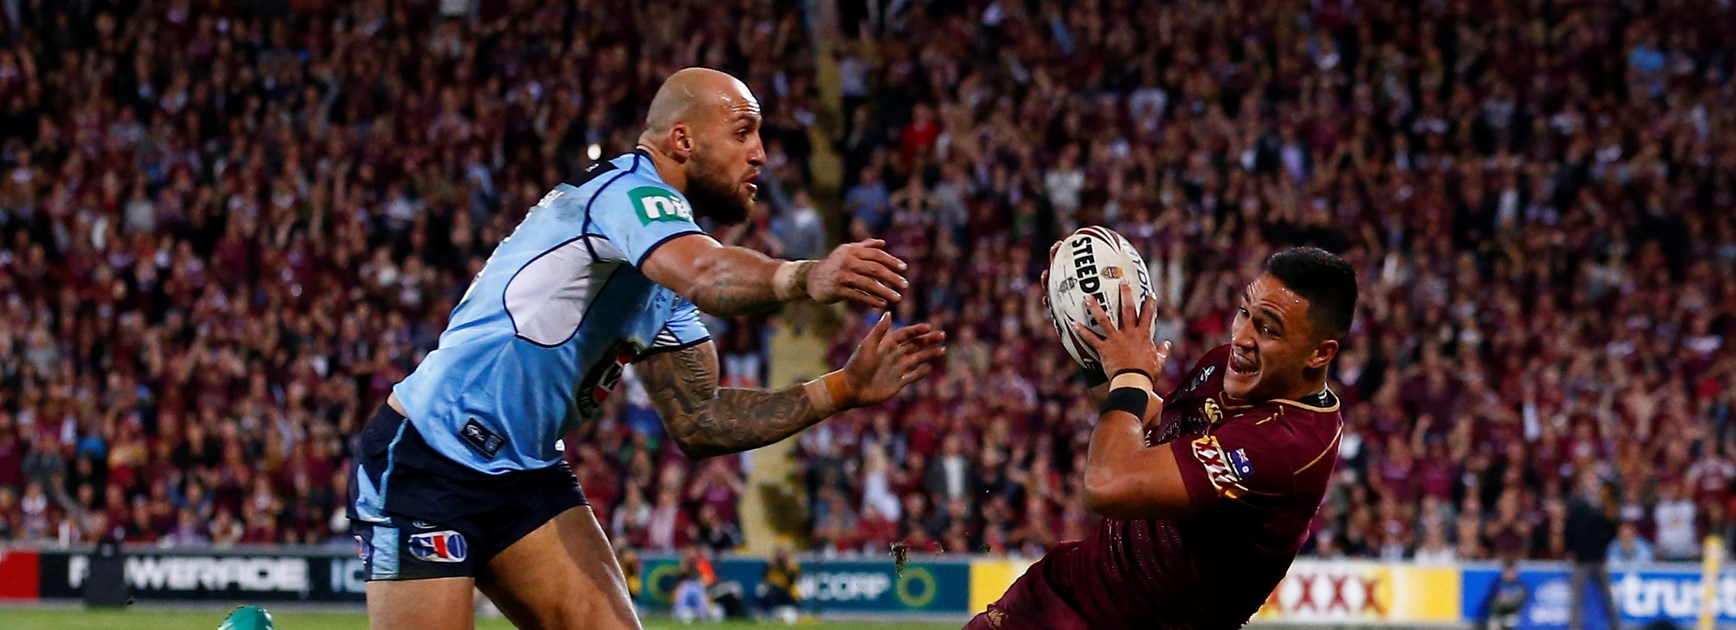 Lockyer, Meninga call out Holmes' form